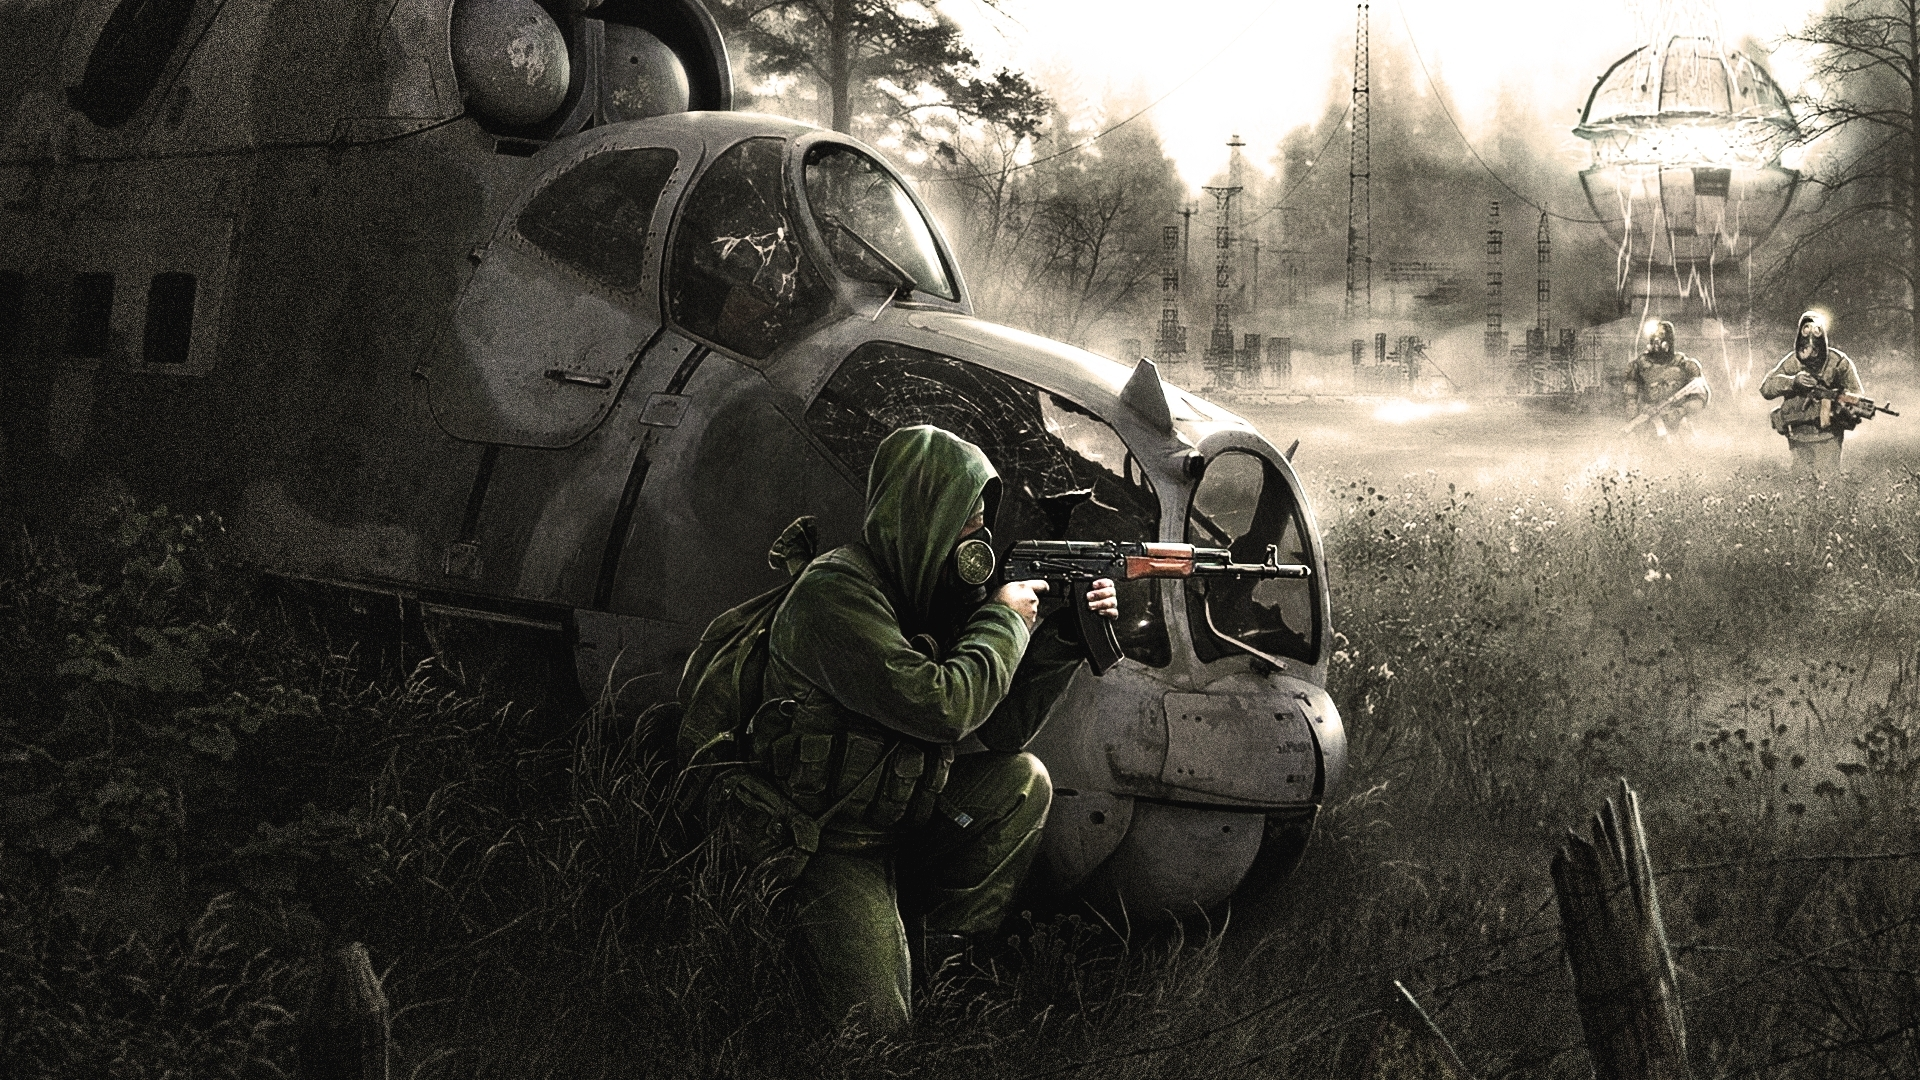 The original developer of STALKER re-opens, has a good laugh, announces new game